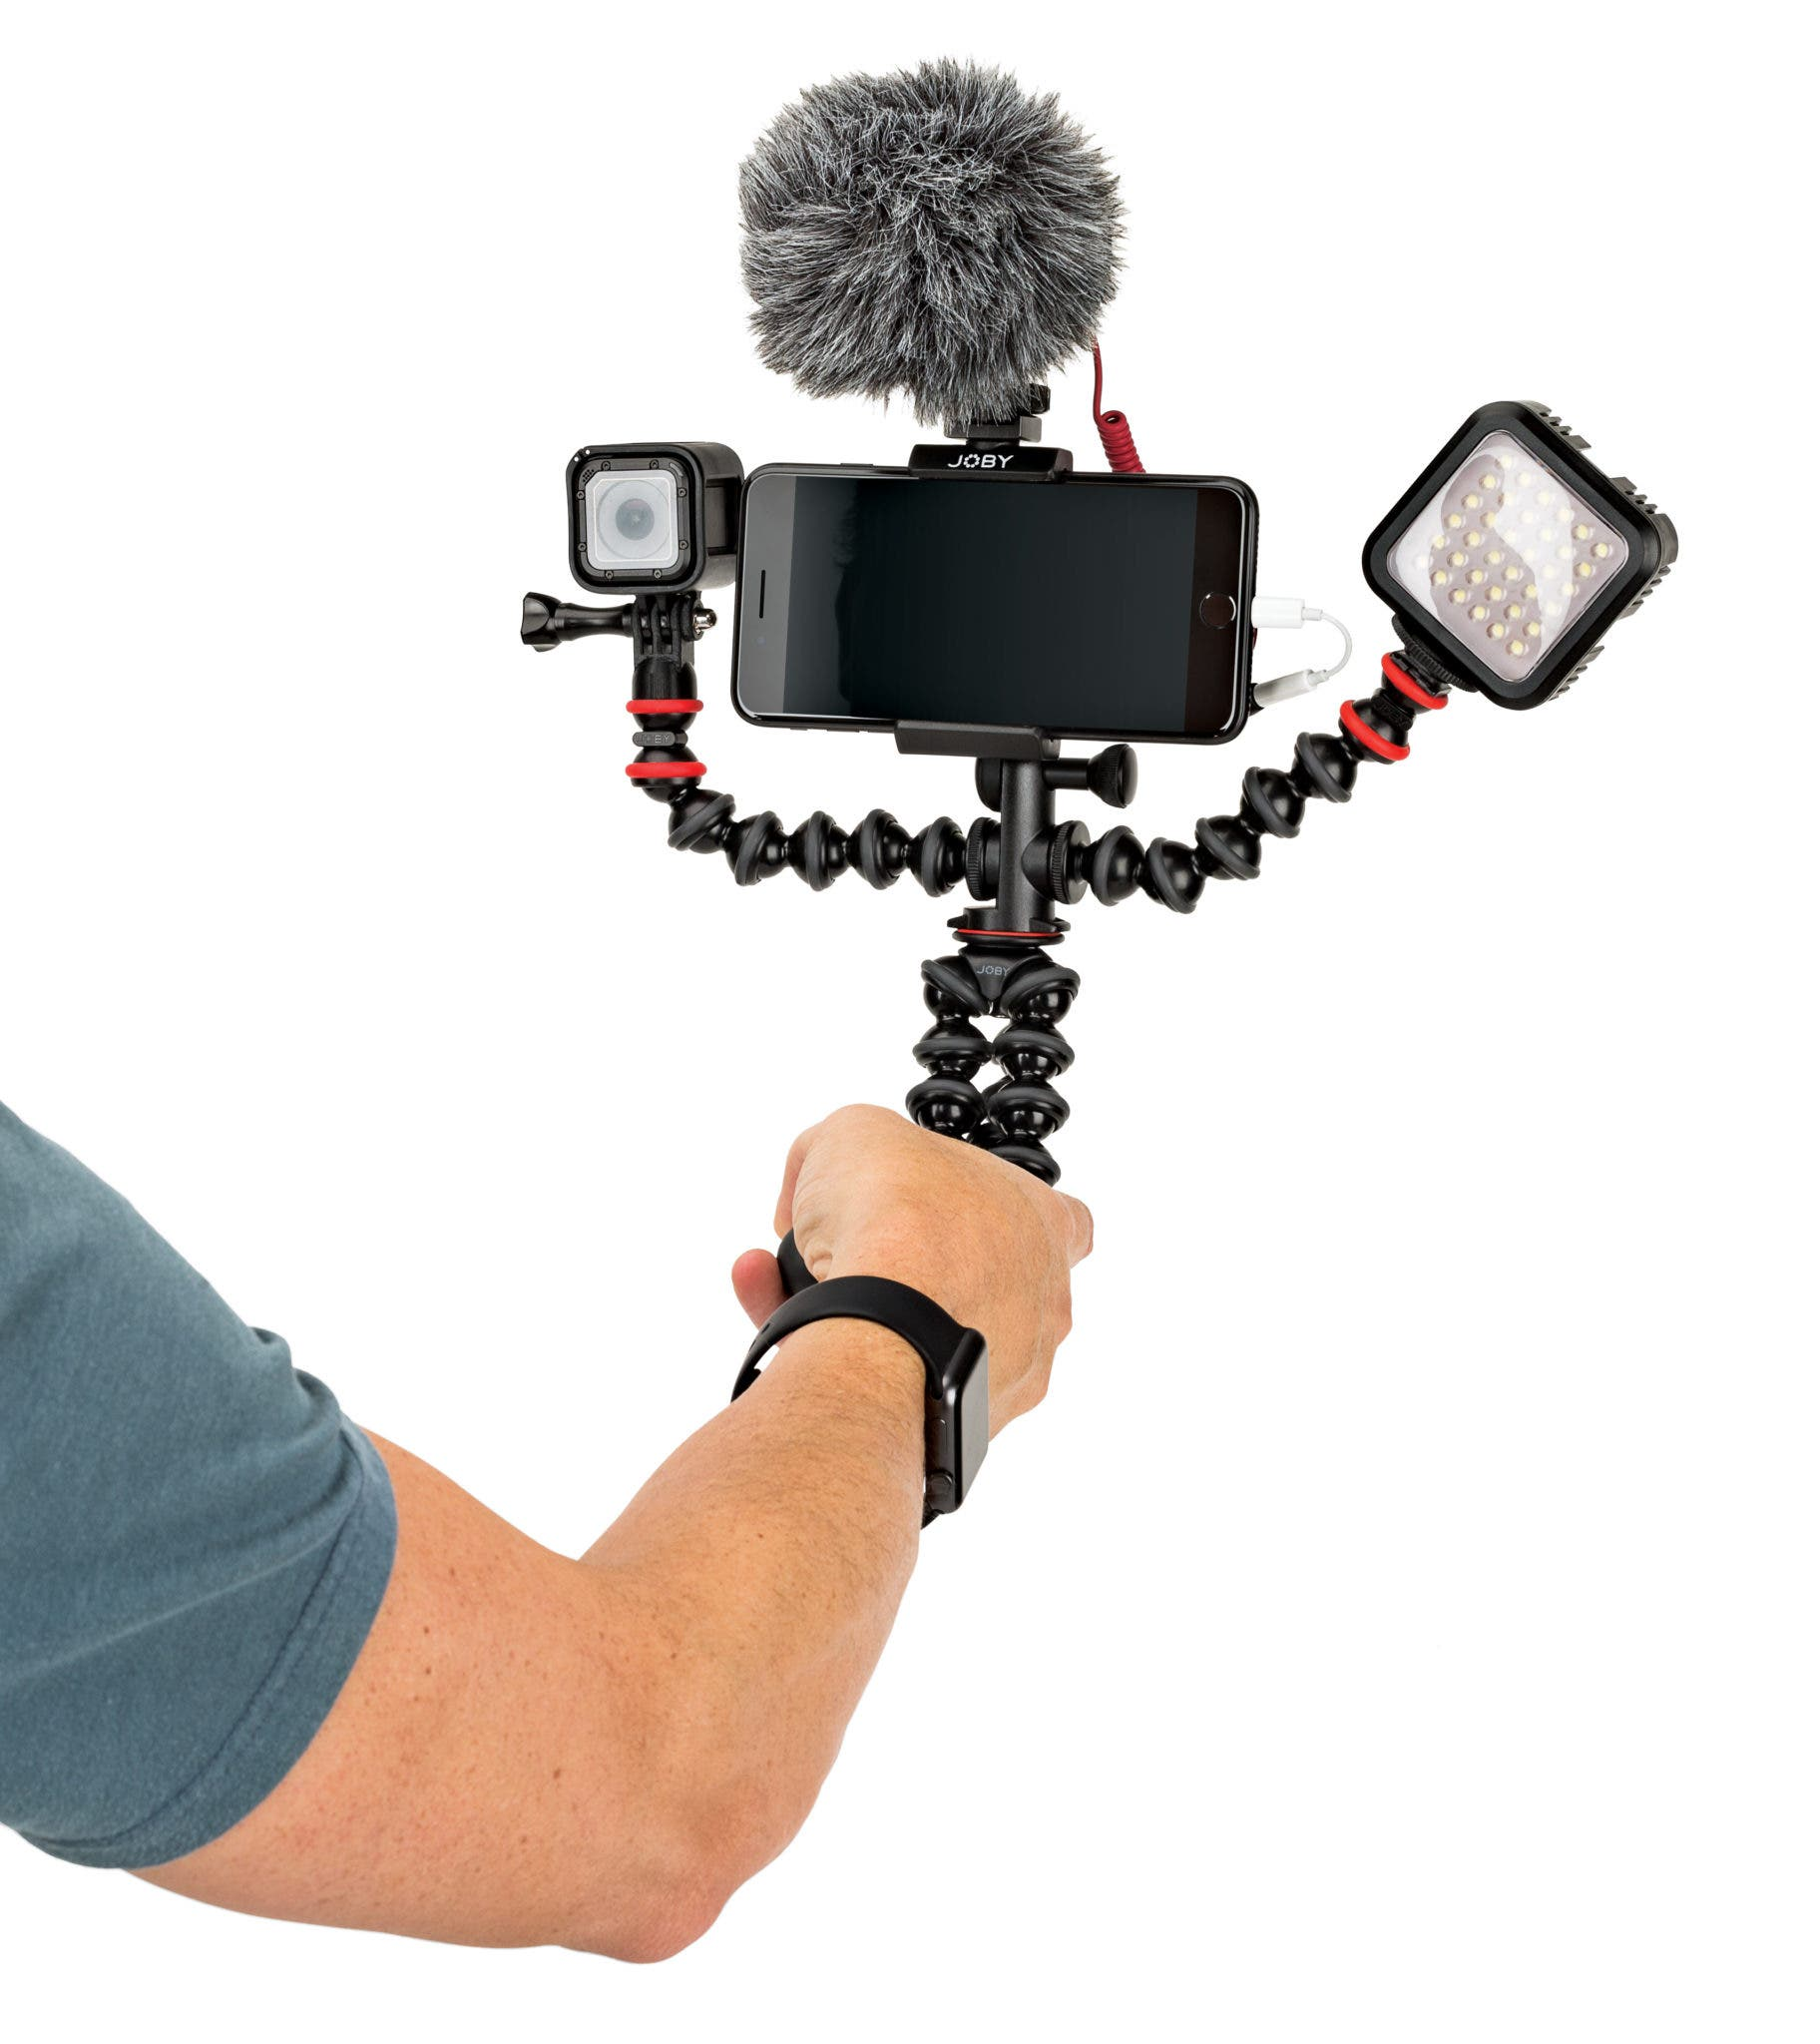 JOBY Launches GorillaPod Mobile Rig for Pro-Grade Mobile Videos